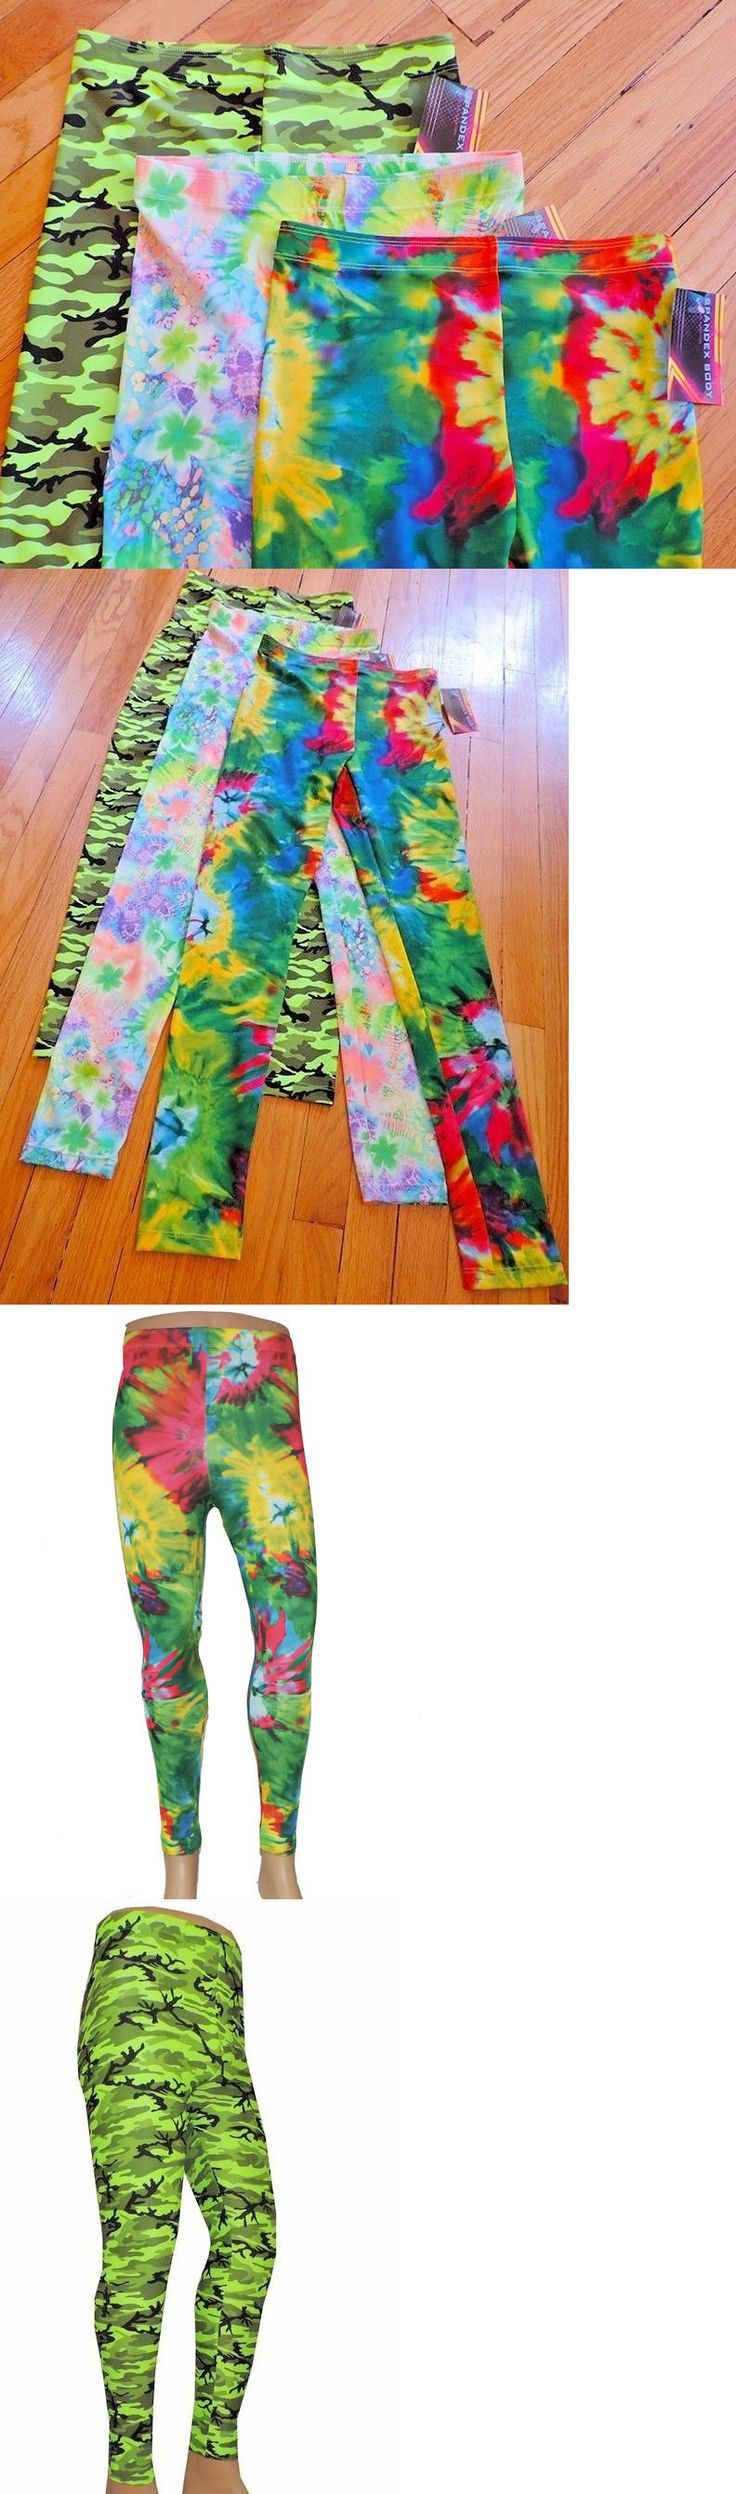 Clothing 79796: Lot 3 Small Wrestling Tights Camoflage Neon Tie Dye Festival Edm Cos Play -> BUY IT NOW ONLY: $60 on eBay!